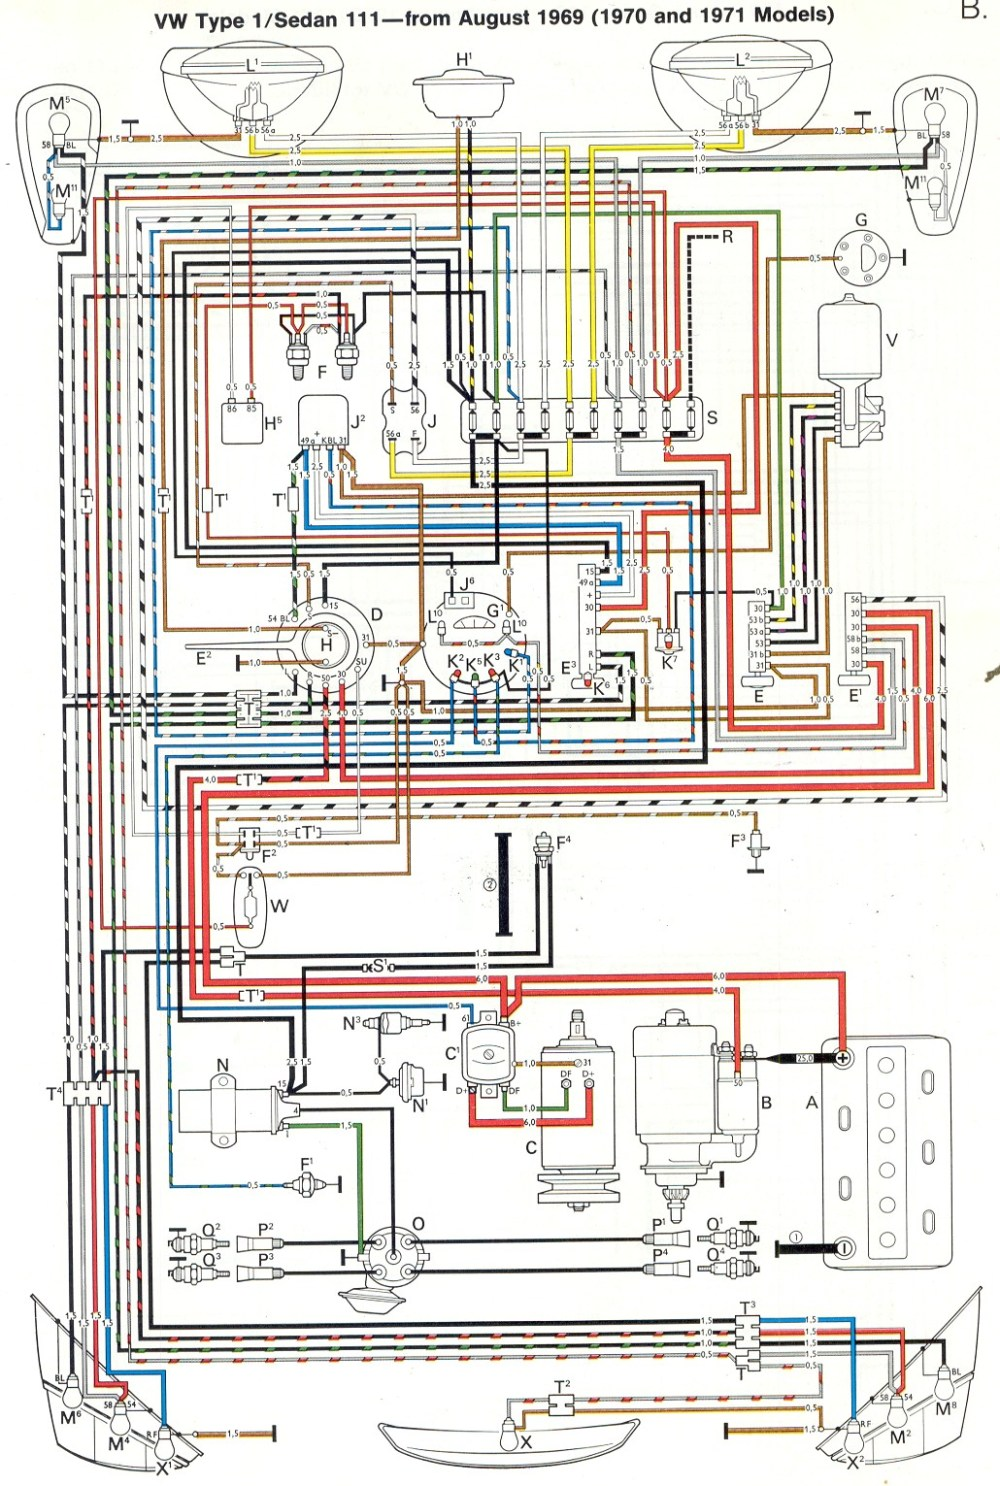 medium resolution of 70 vw wiring diagram free picture schematic wiring diagrams scematic 1976 vw beetle wiring diagram 70 vw wiring diagram